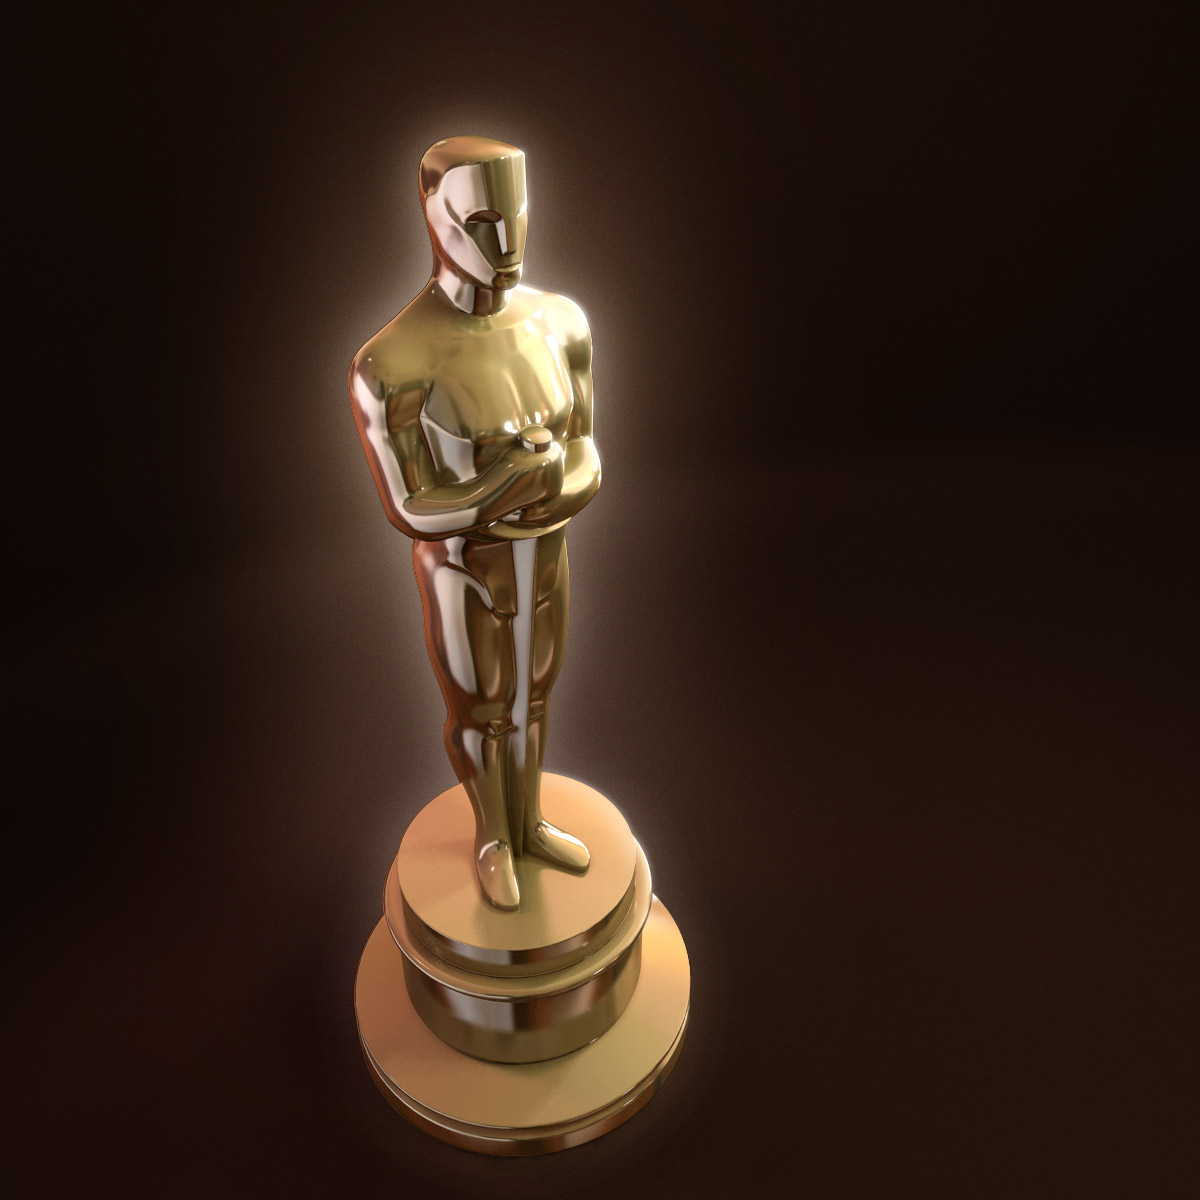 academy-awards-by-reviewsinhddotcom